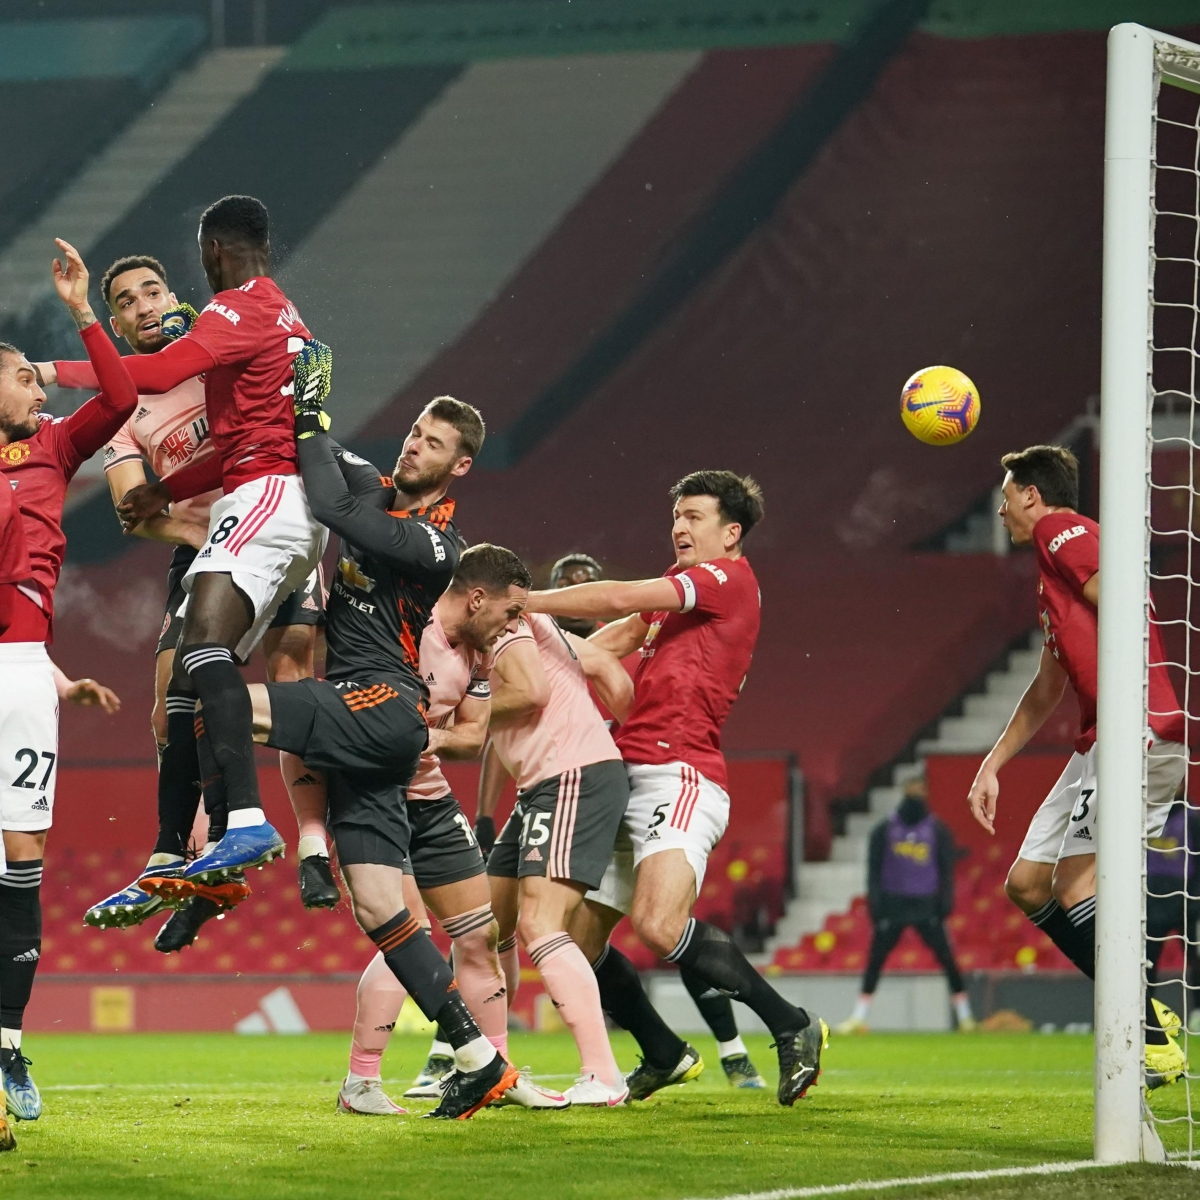 Premier League: Bottom-placed Sheffield United stun 'not good enough' Manchester United with 2-1 victory